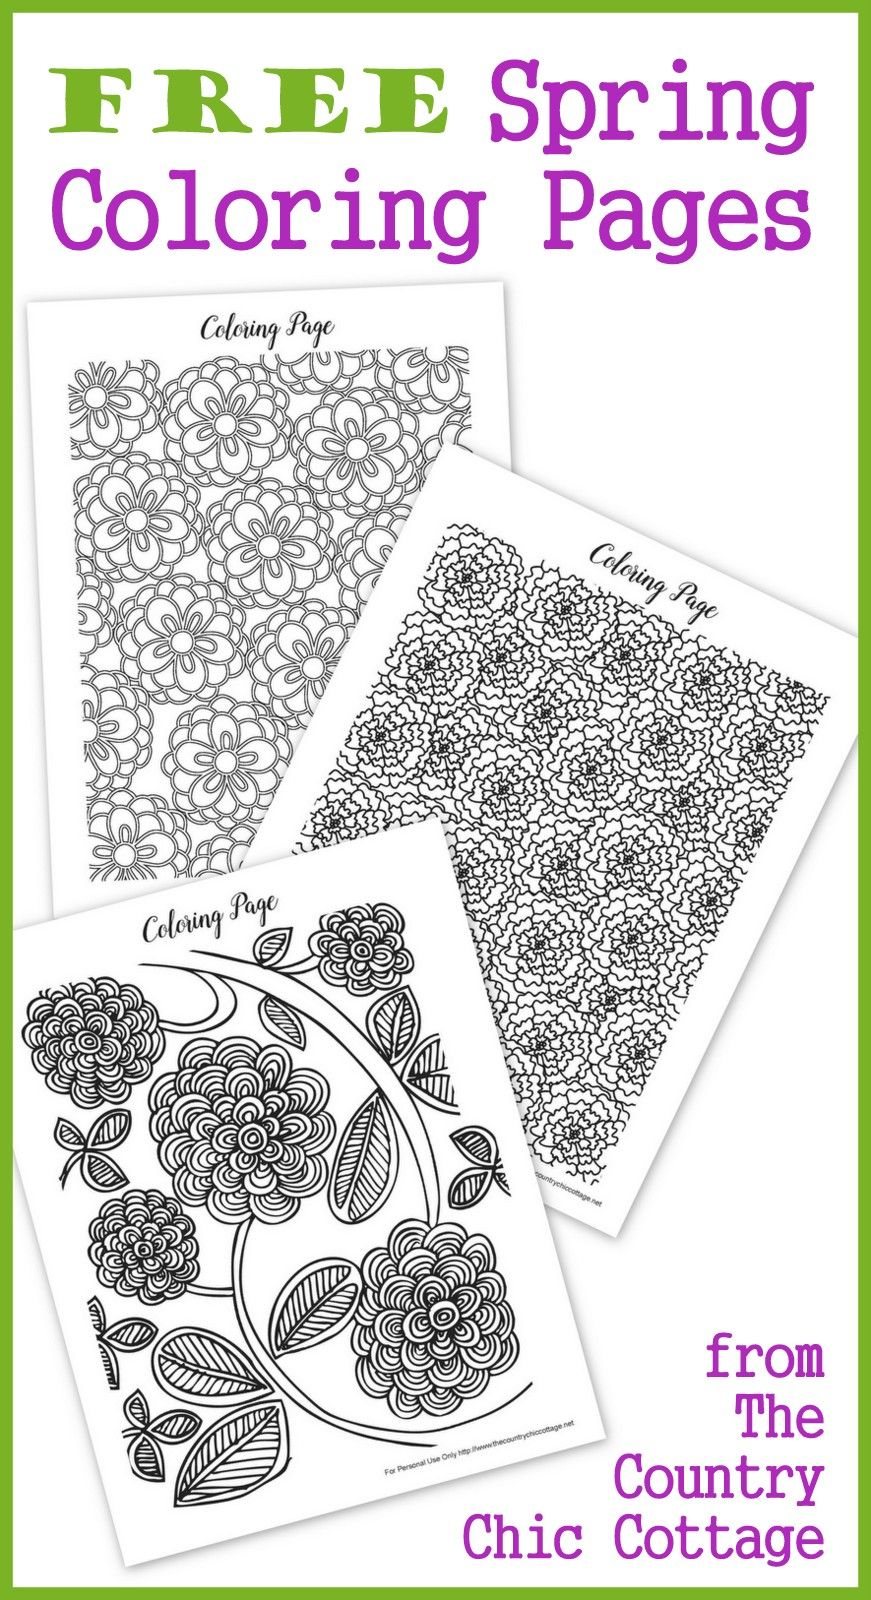 Free Spring Coloring Pages for Adults | Spring coloring ...